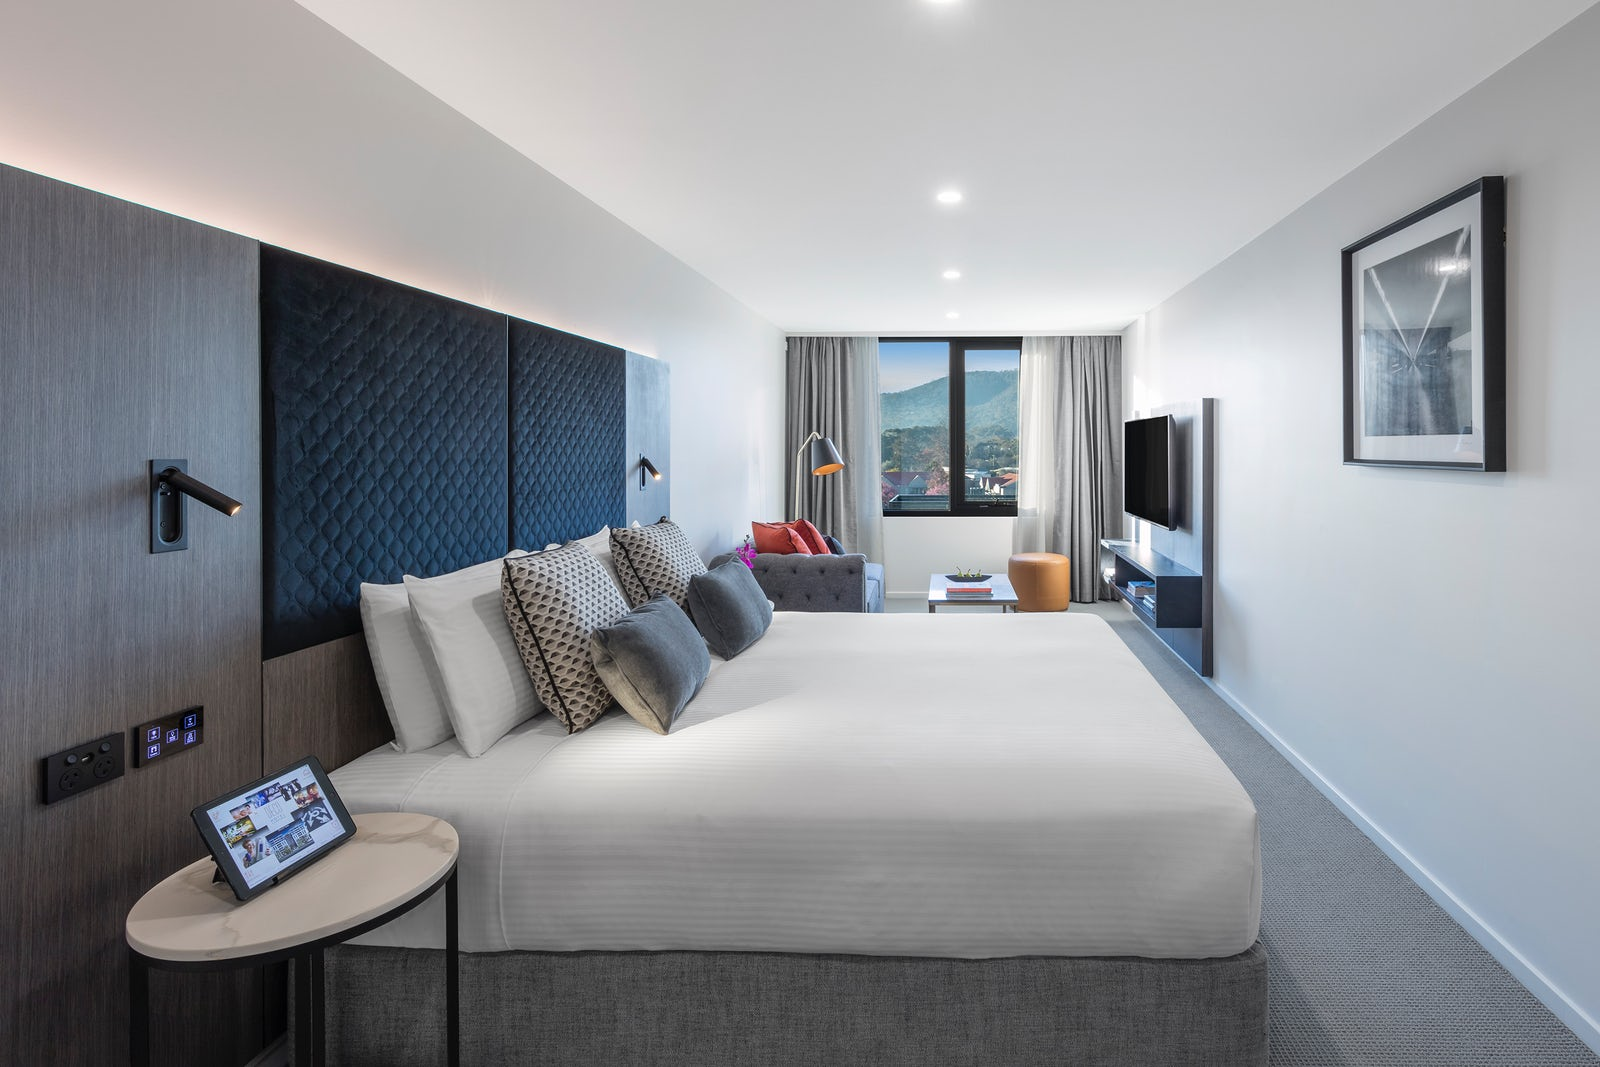 Luxe King Room at the Deco Hotel